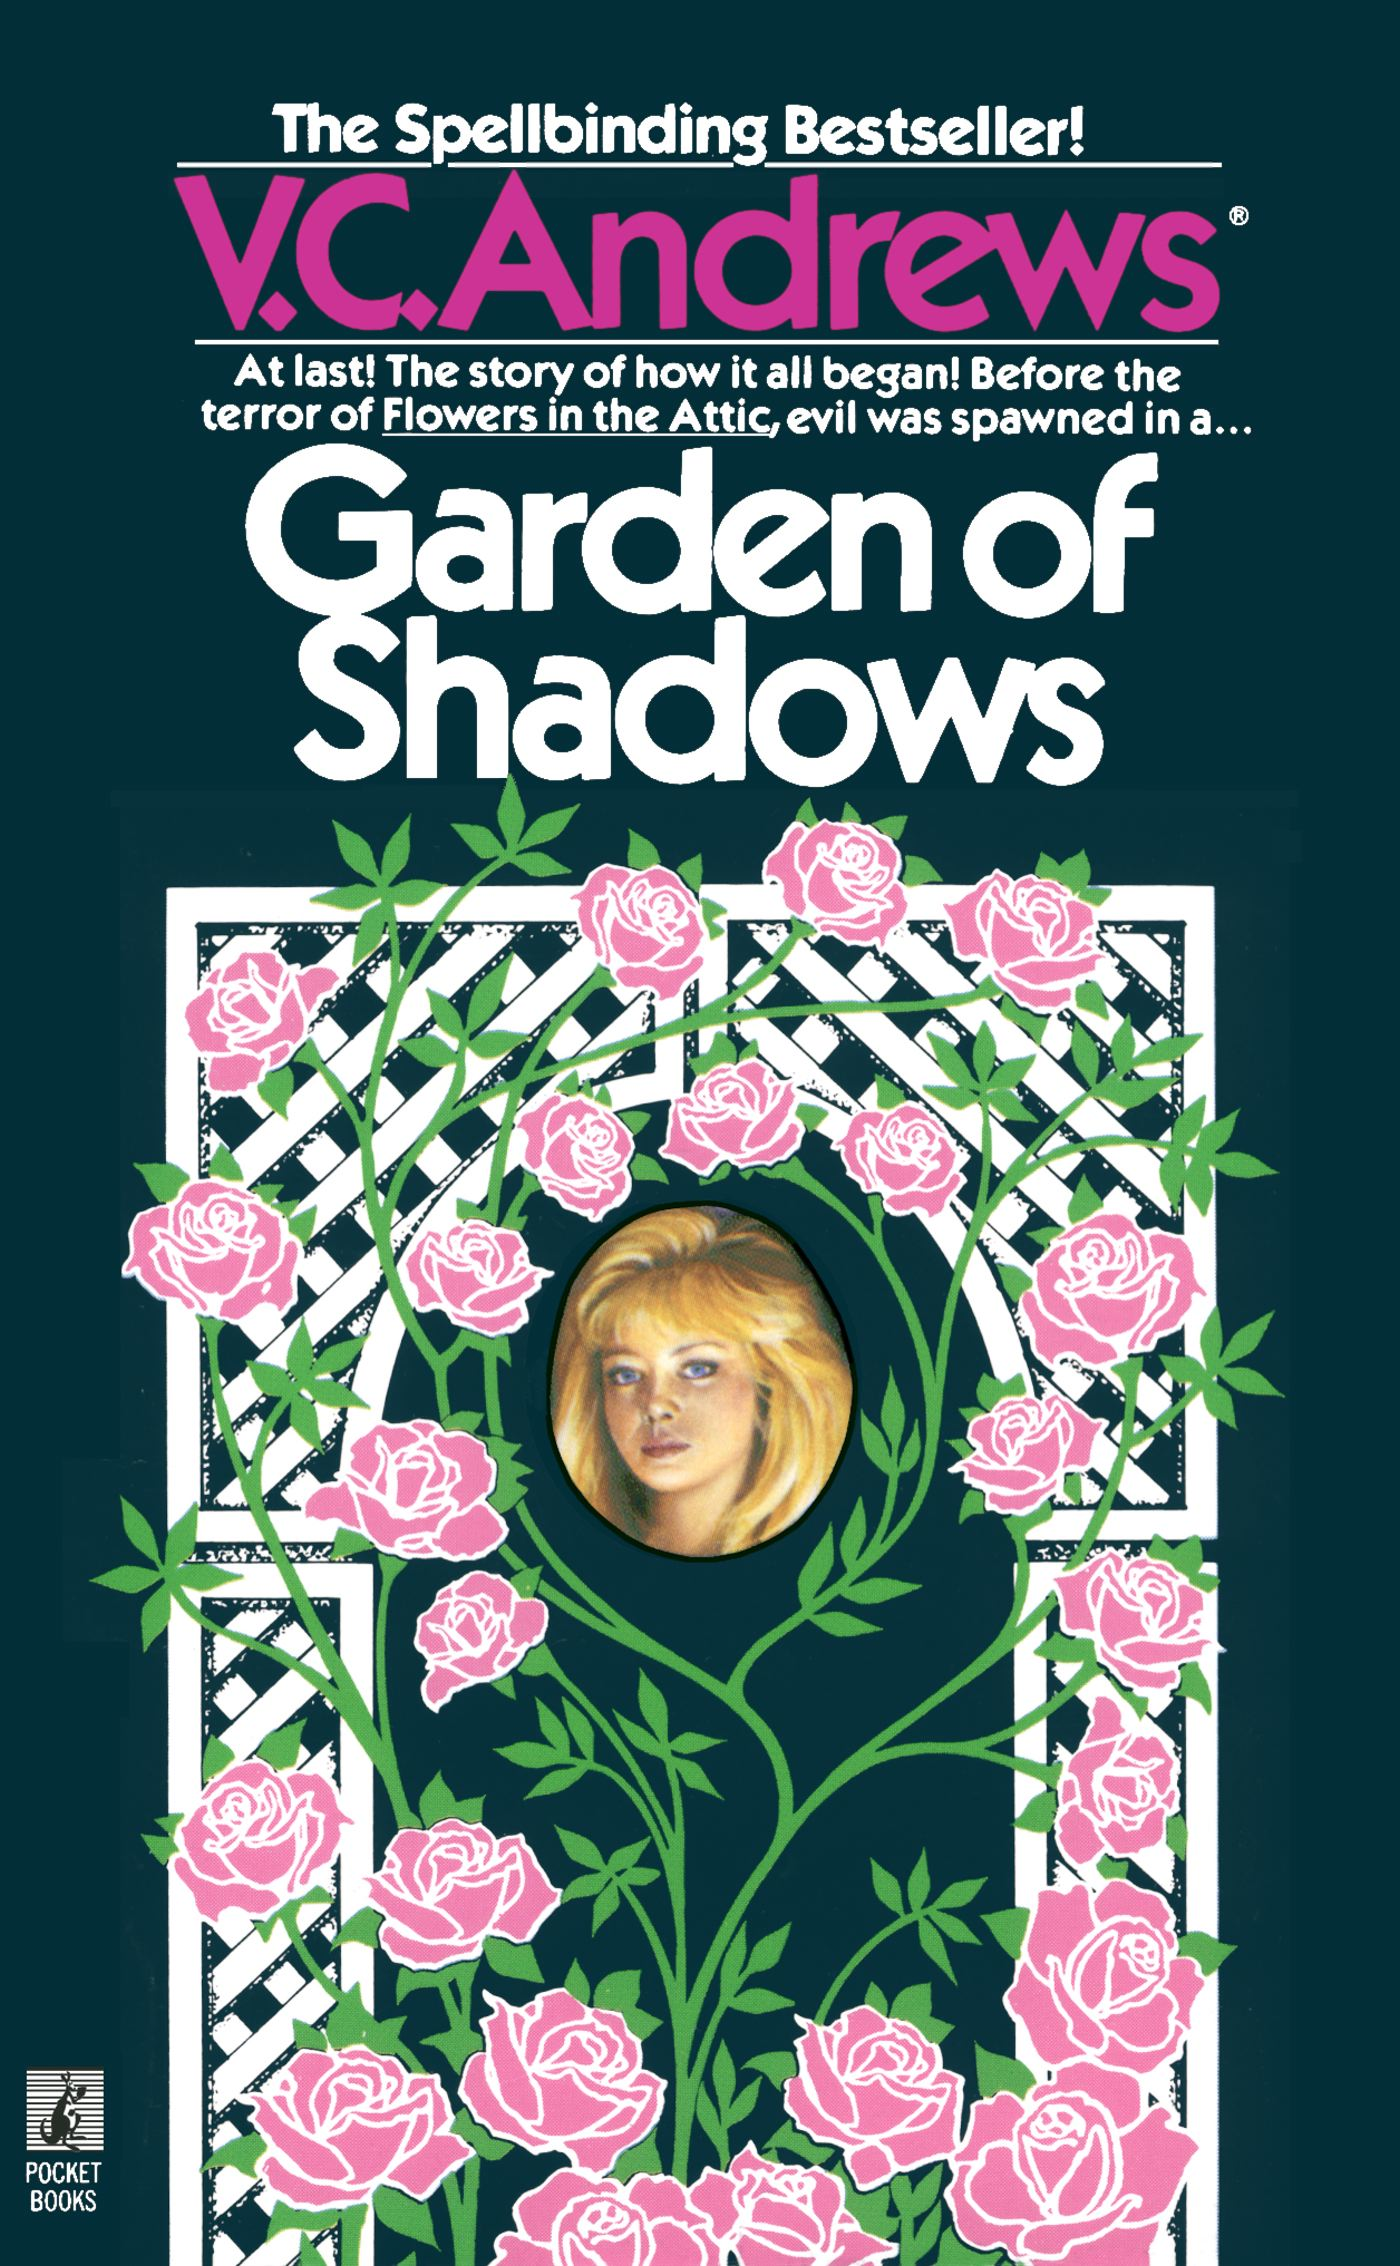 Garden of Shadows Book by V C Andrews ficial Publisher Page